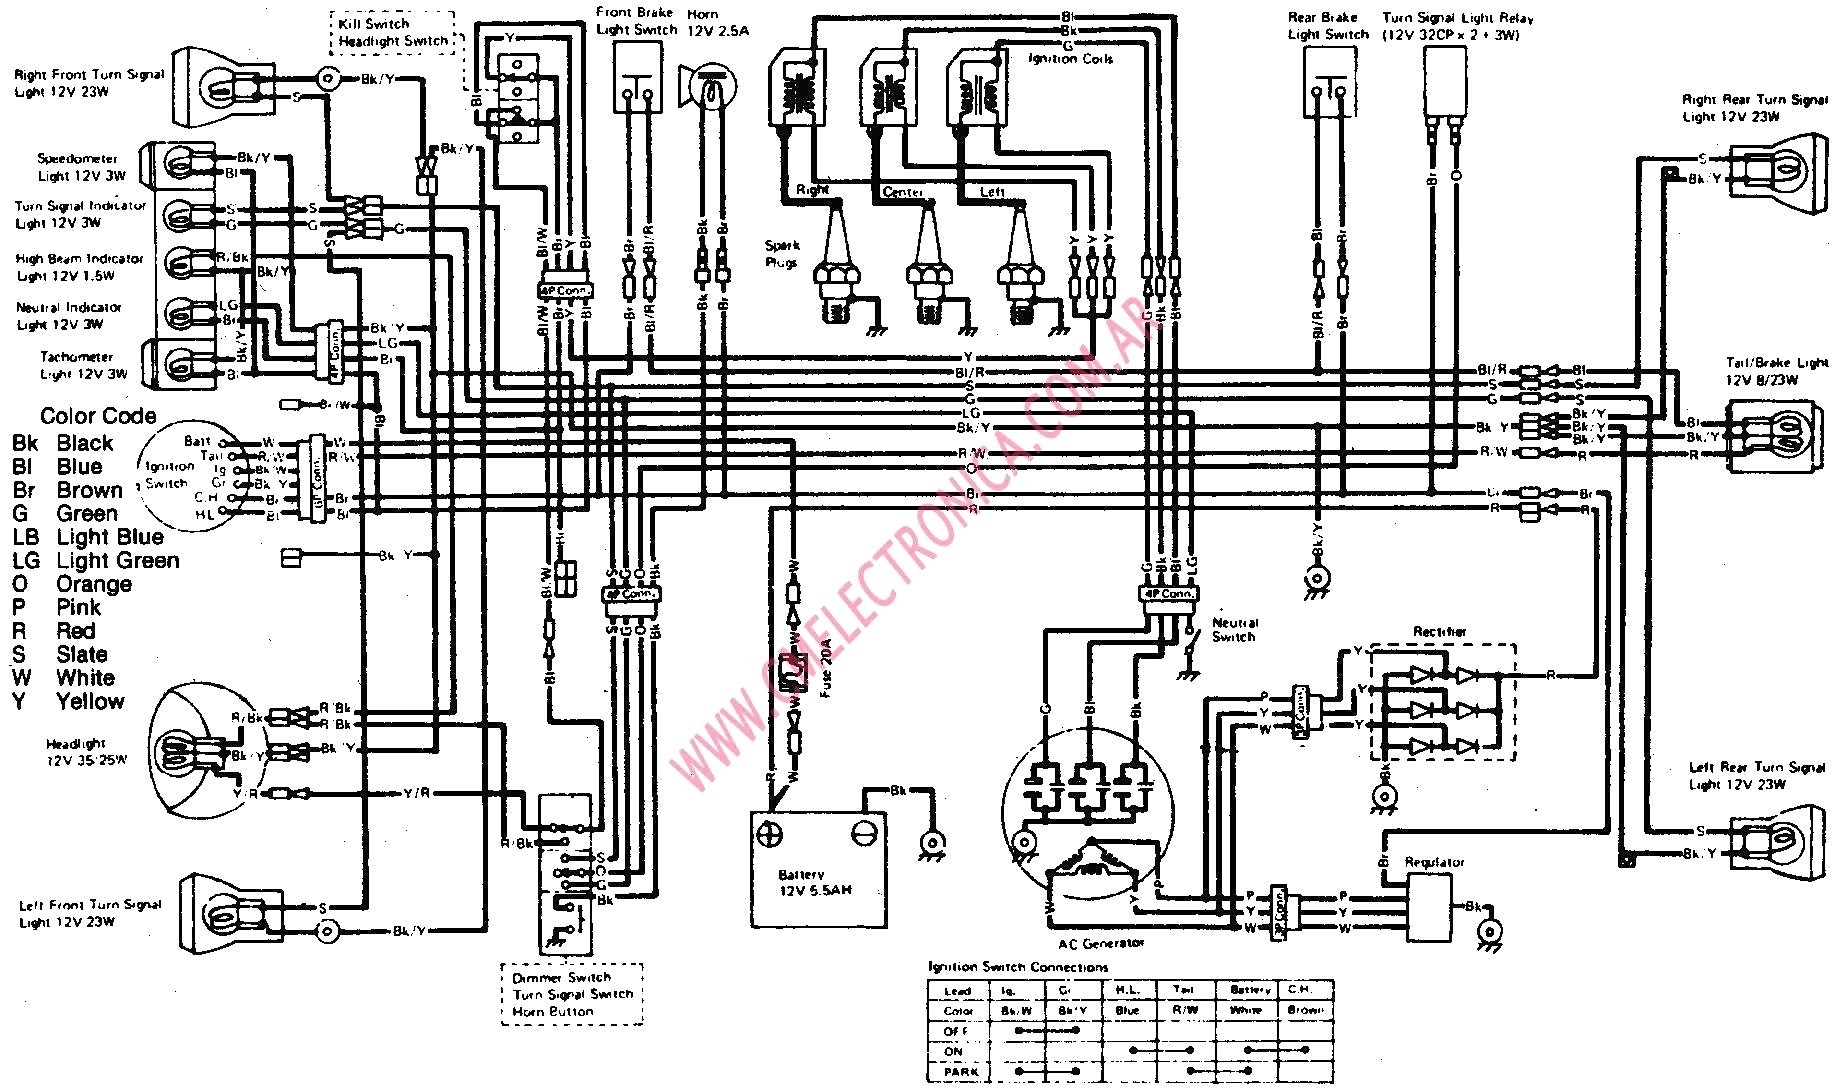 [DIAGRAM] 85 Kawasaki Ninja Wiring Diagram Schematic FULL